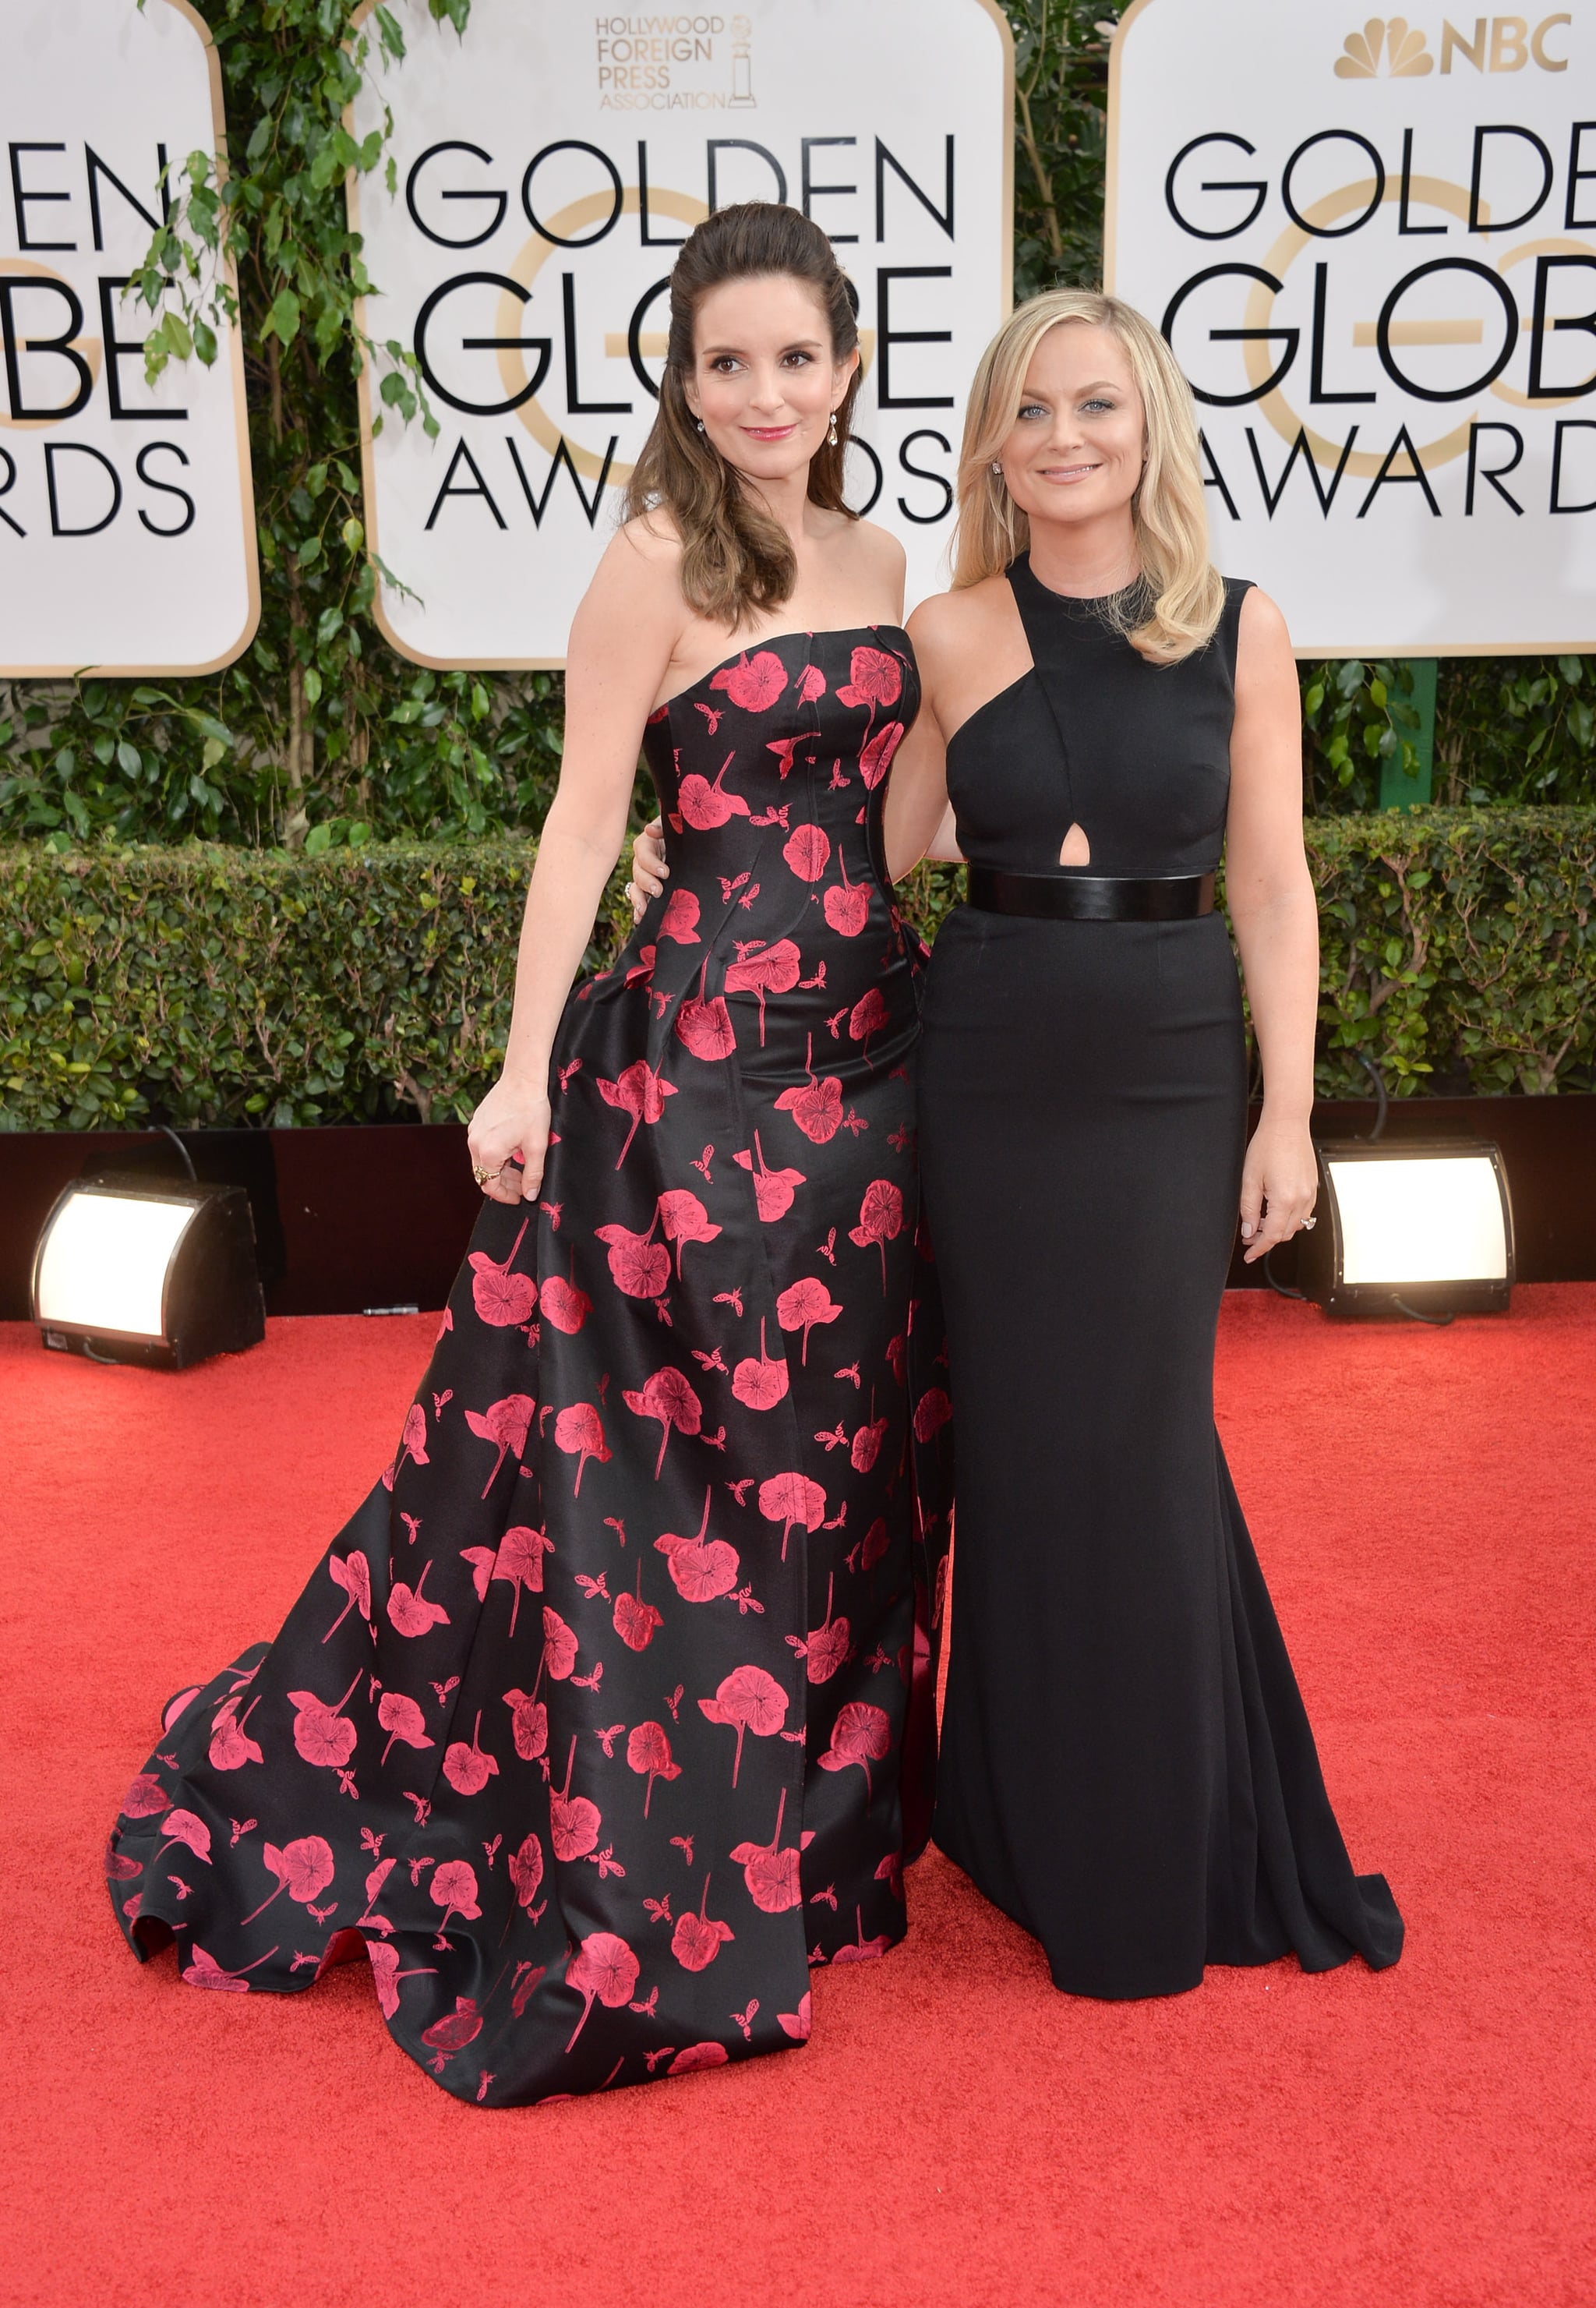 BEVERLY HILLS, CA - JANUARY 12:  Actresses Tina Fey (L) and Amy Poehler attend the 71st Annual Golden Globe Awards held at The Beverly Hilton Hotel on January 12, 2014 in Beverly Hills, California.  (Photo by George Pimentel/WireImage)